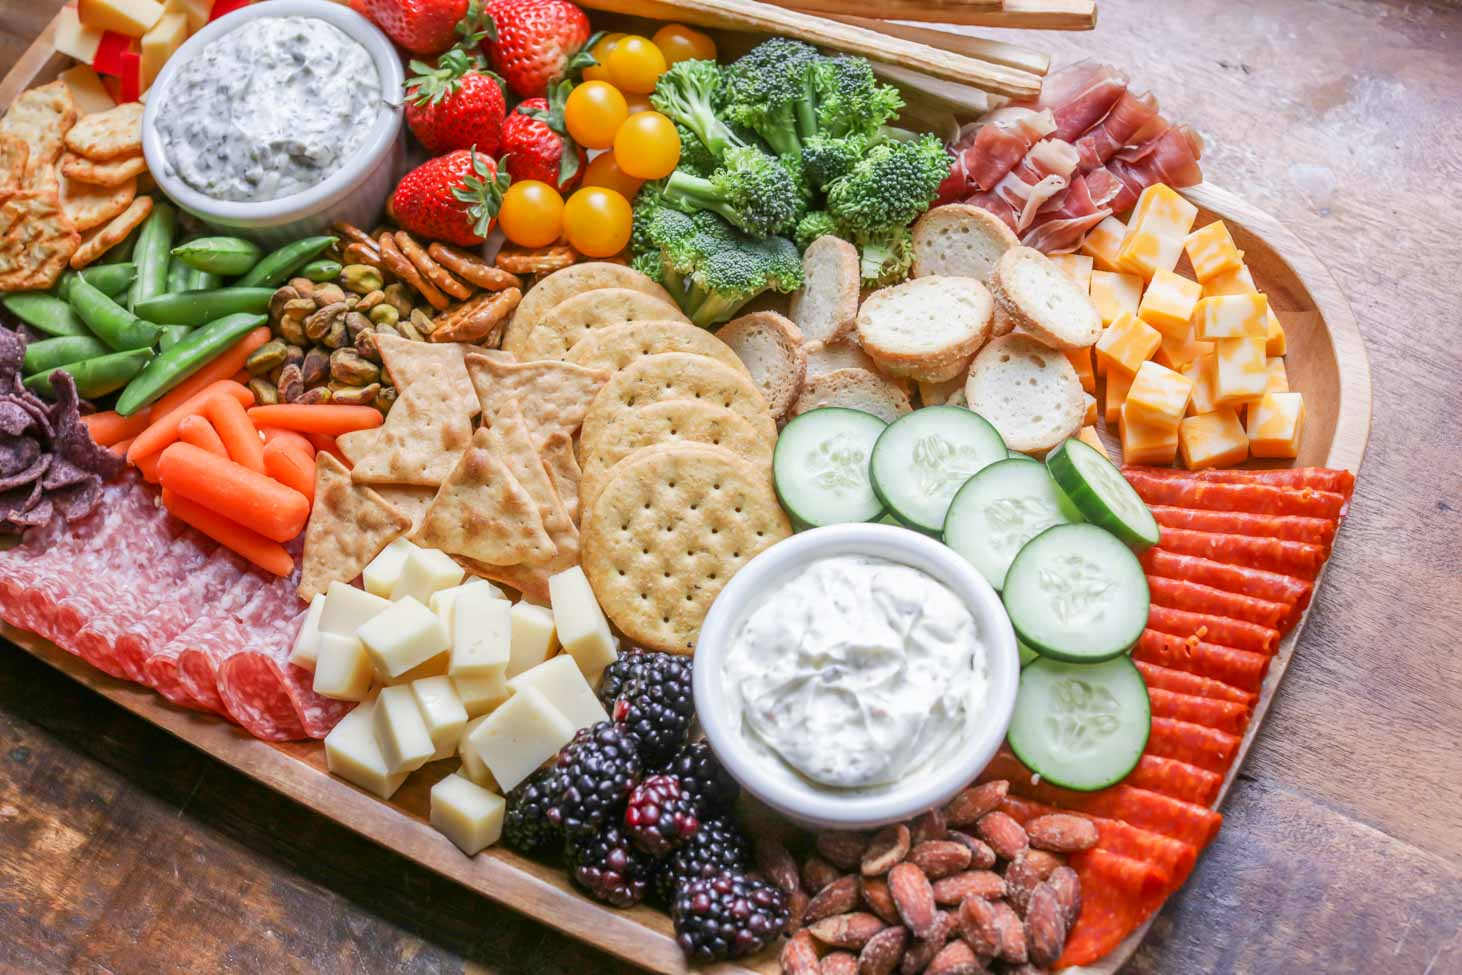 A charcuterie board with fruits and vegetables, making for a healthy appetizer